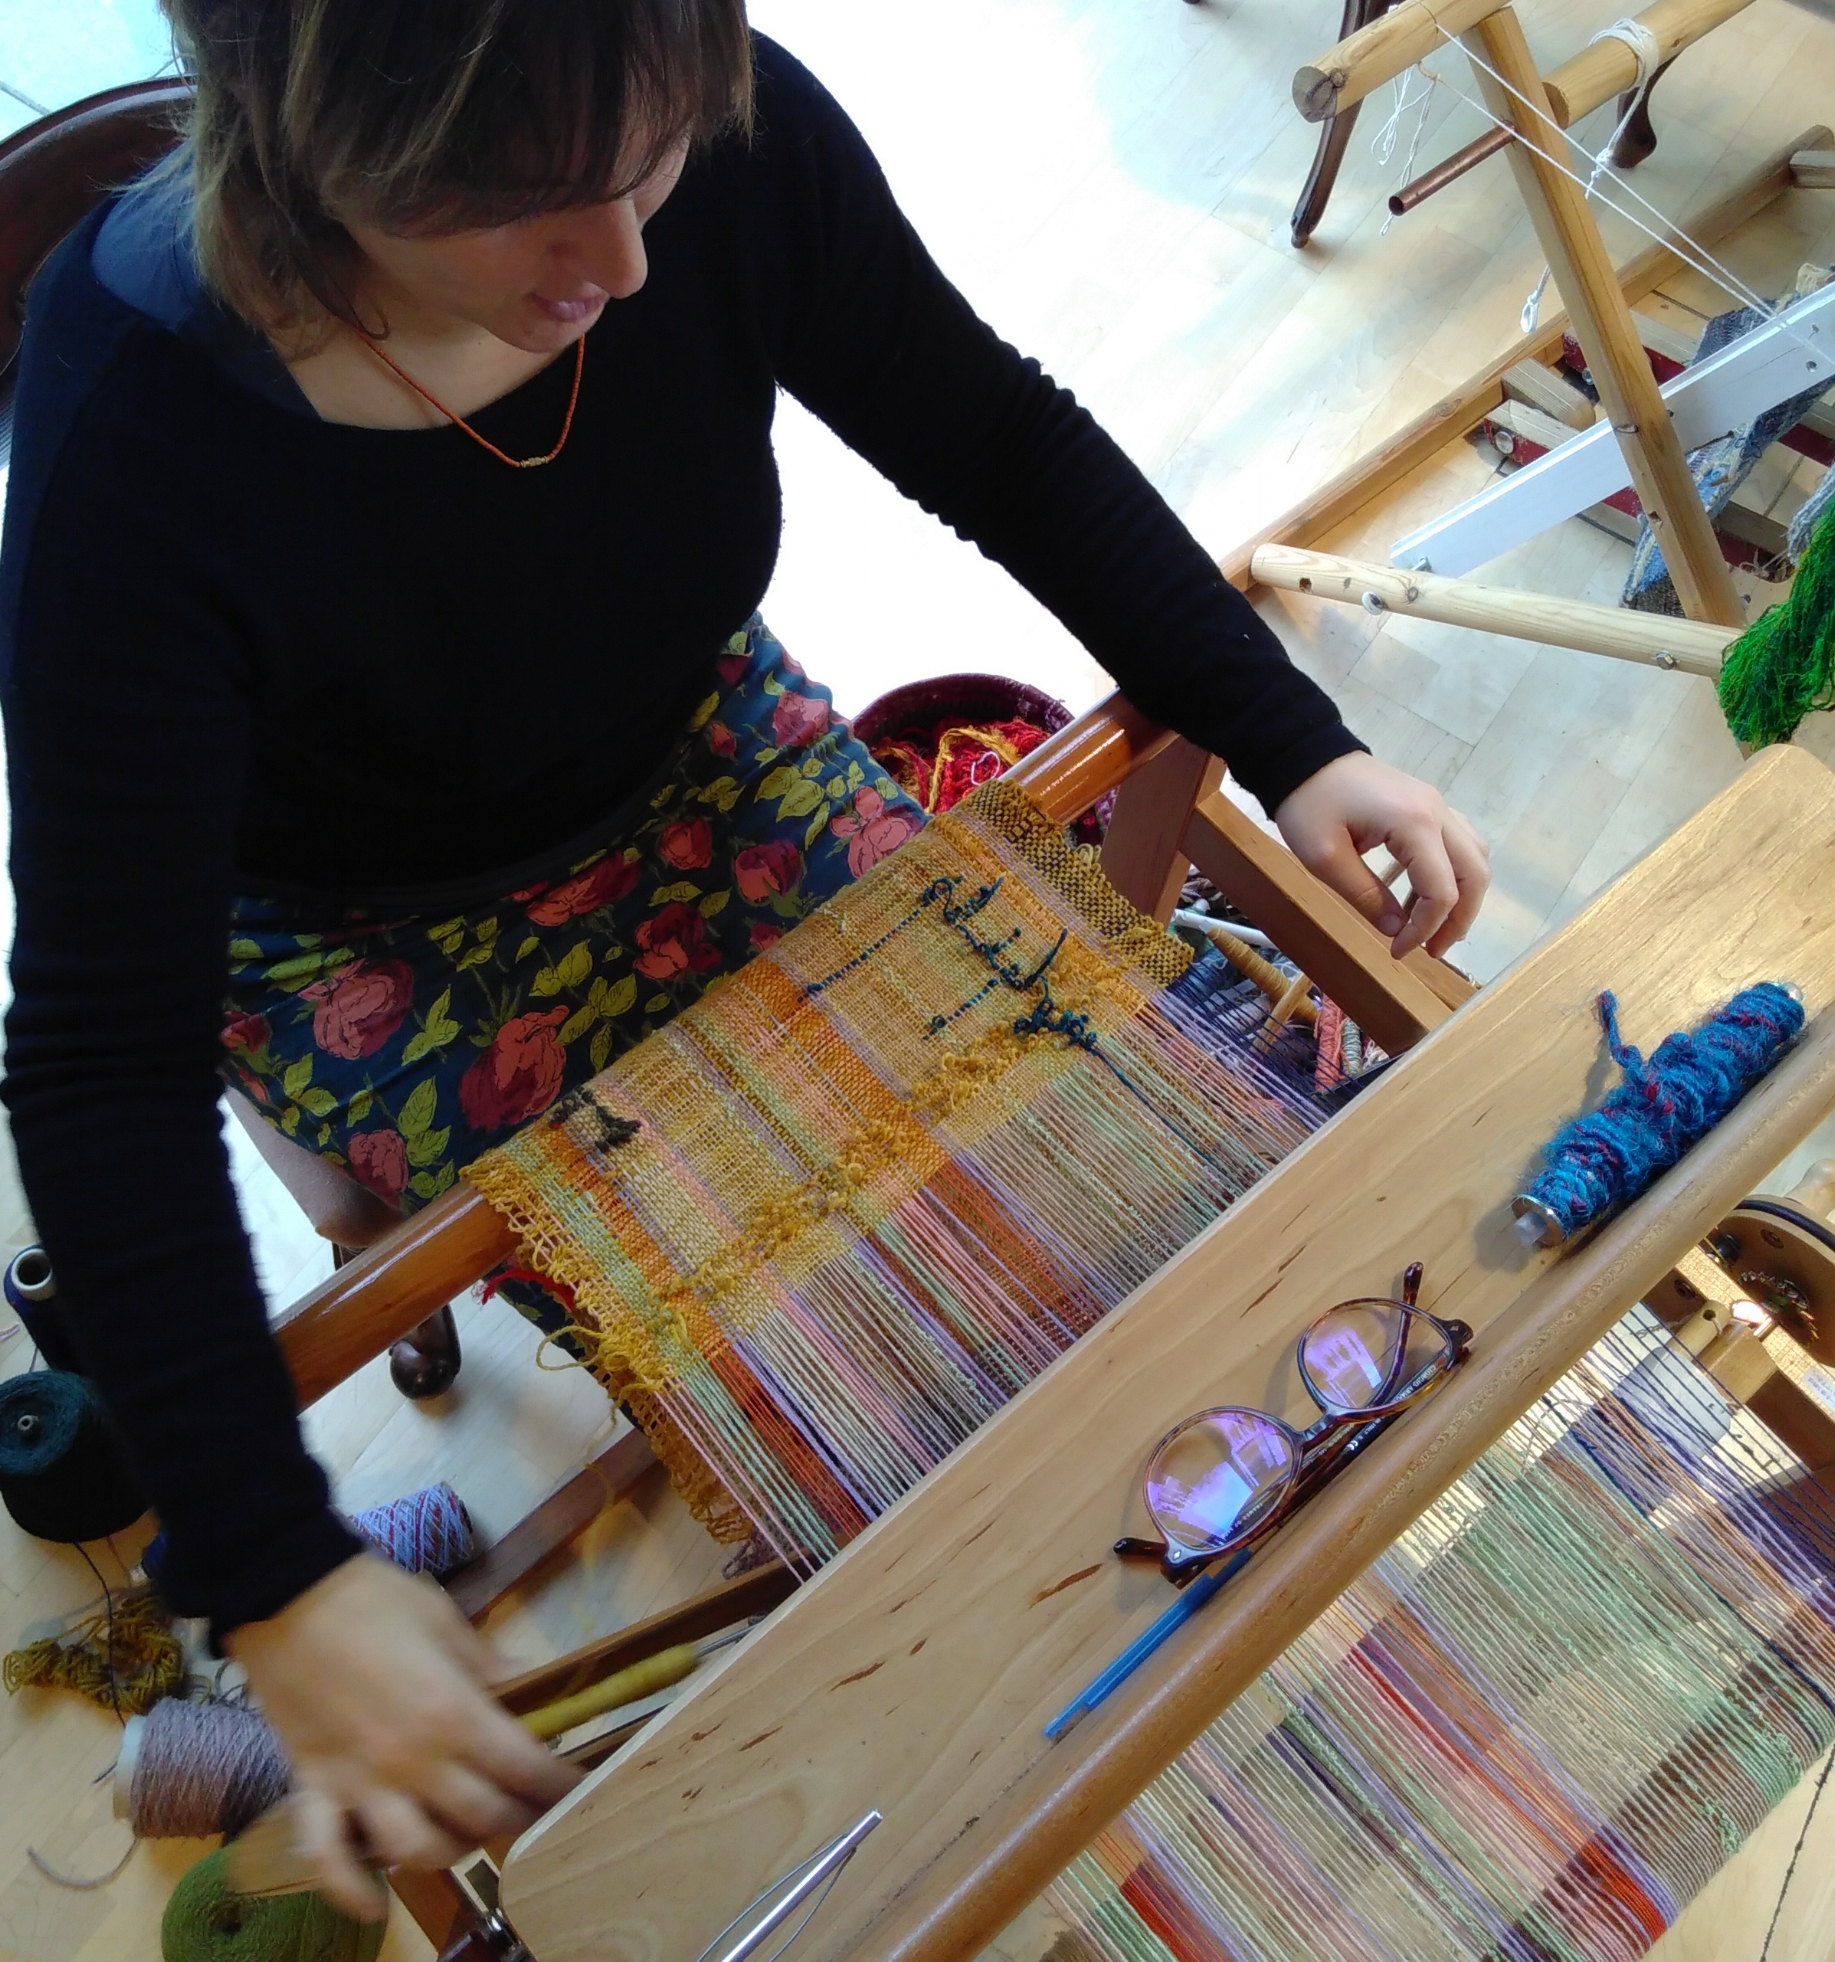 Picture taken at last year January's weaving session at Poplar Union Arts Centre.